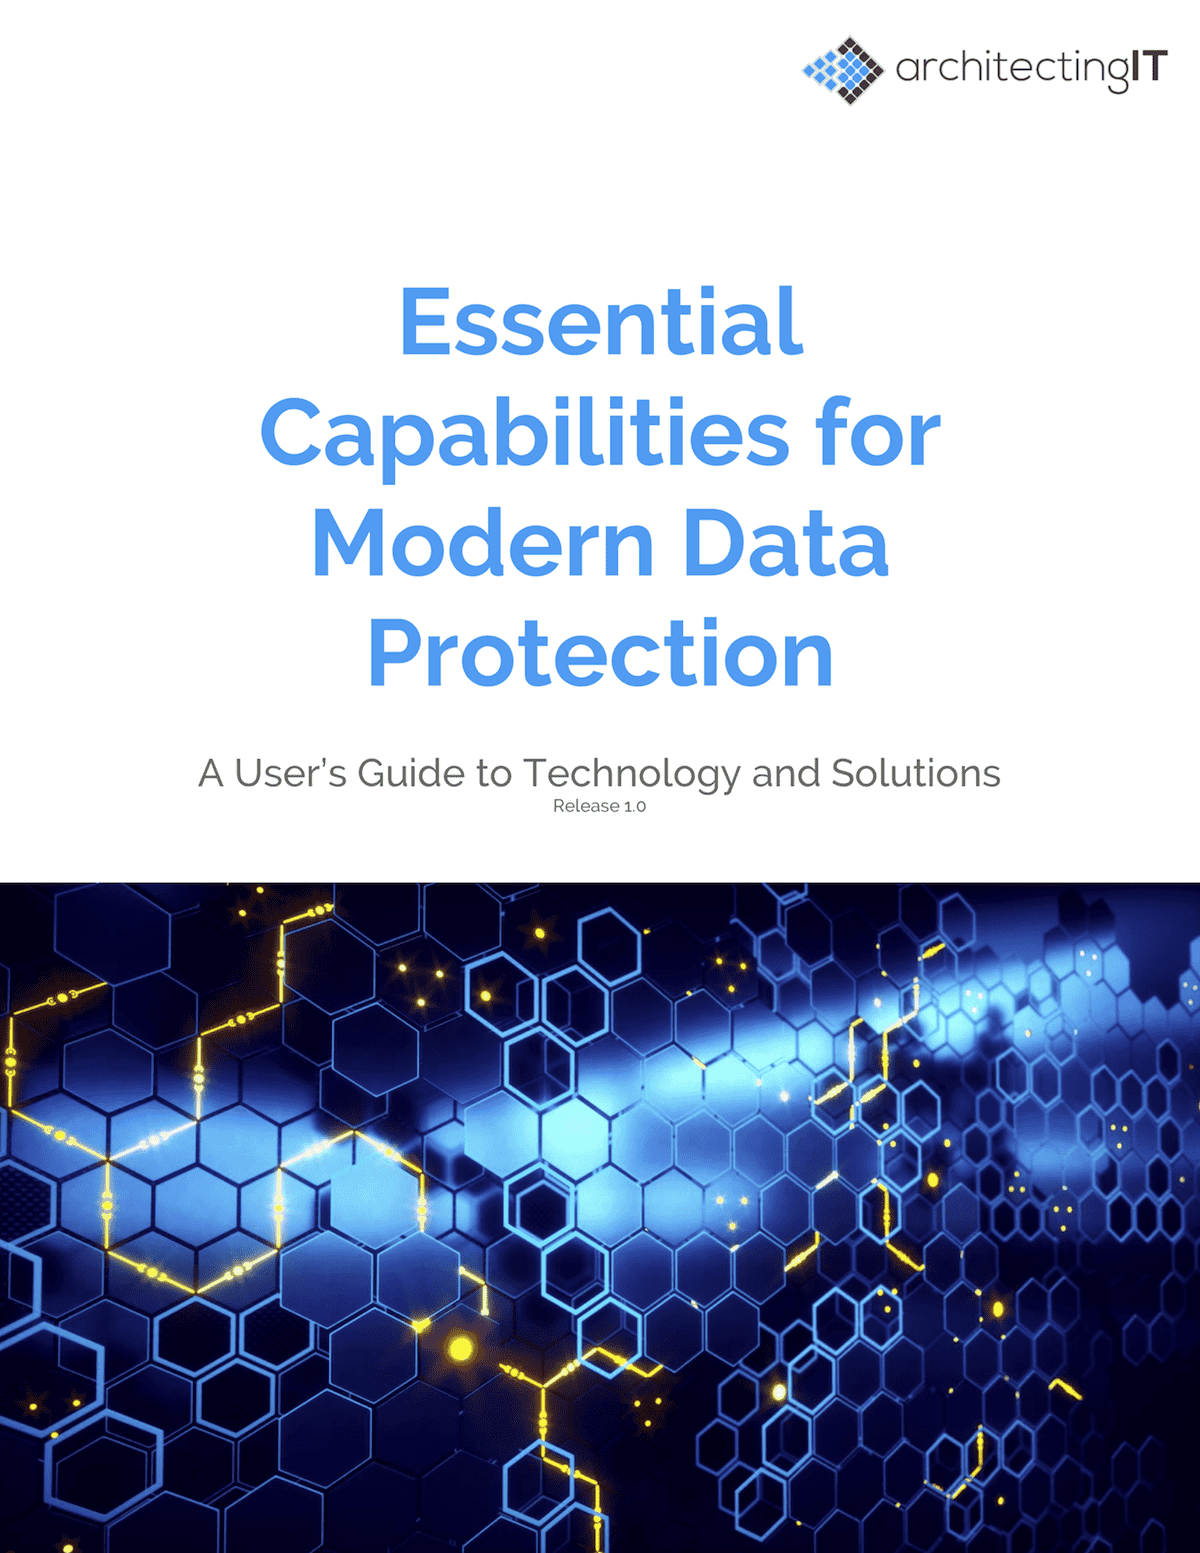 Essential Capabilities for Modern Data Protection 1.0 – eBook Report